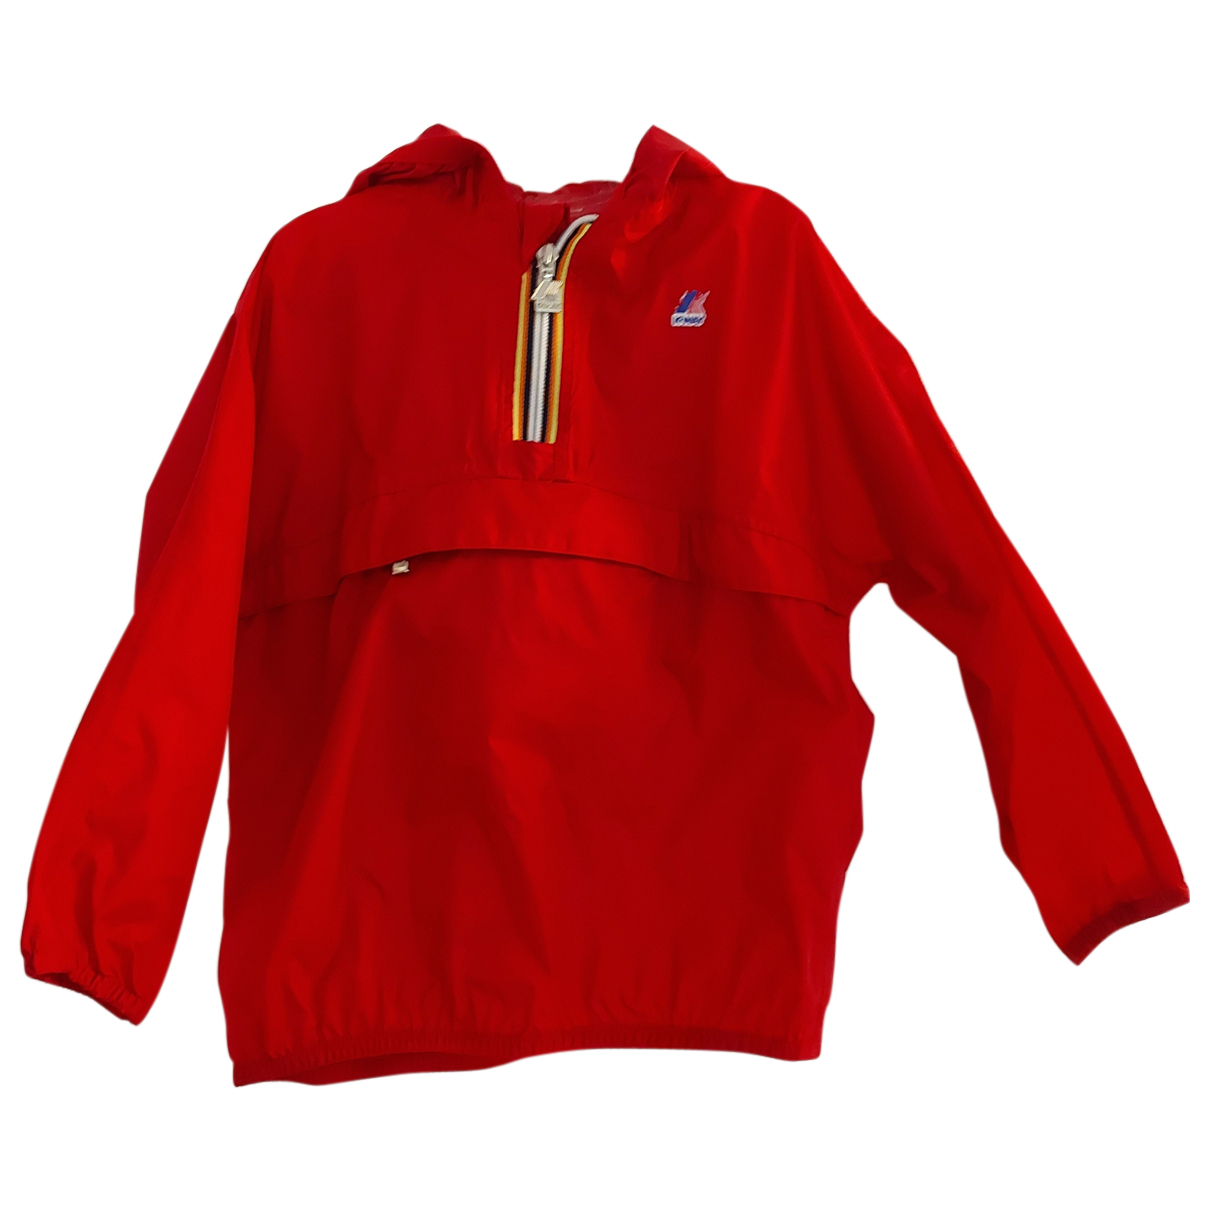 K-way N Red jacket & coat for Kids 3 years - up to 98cm FR